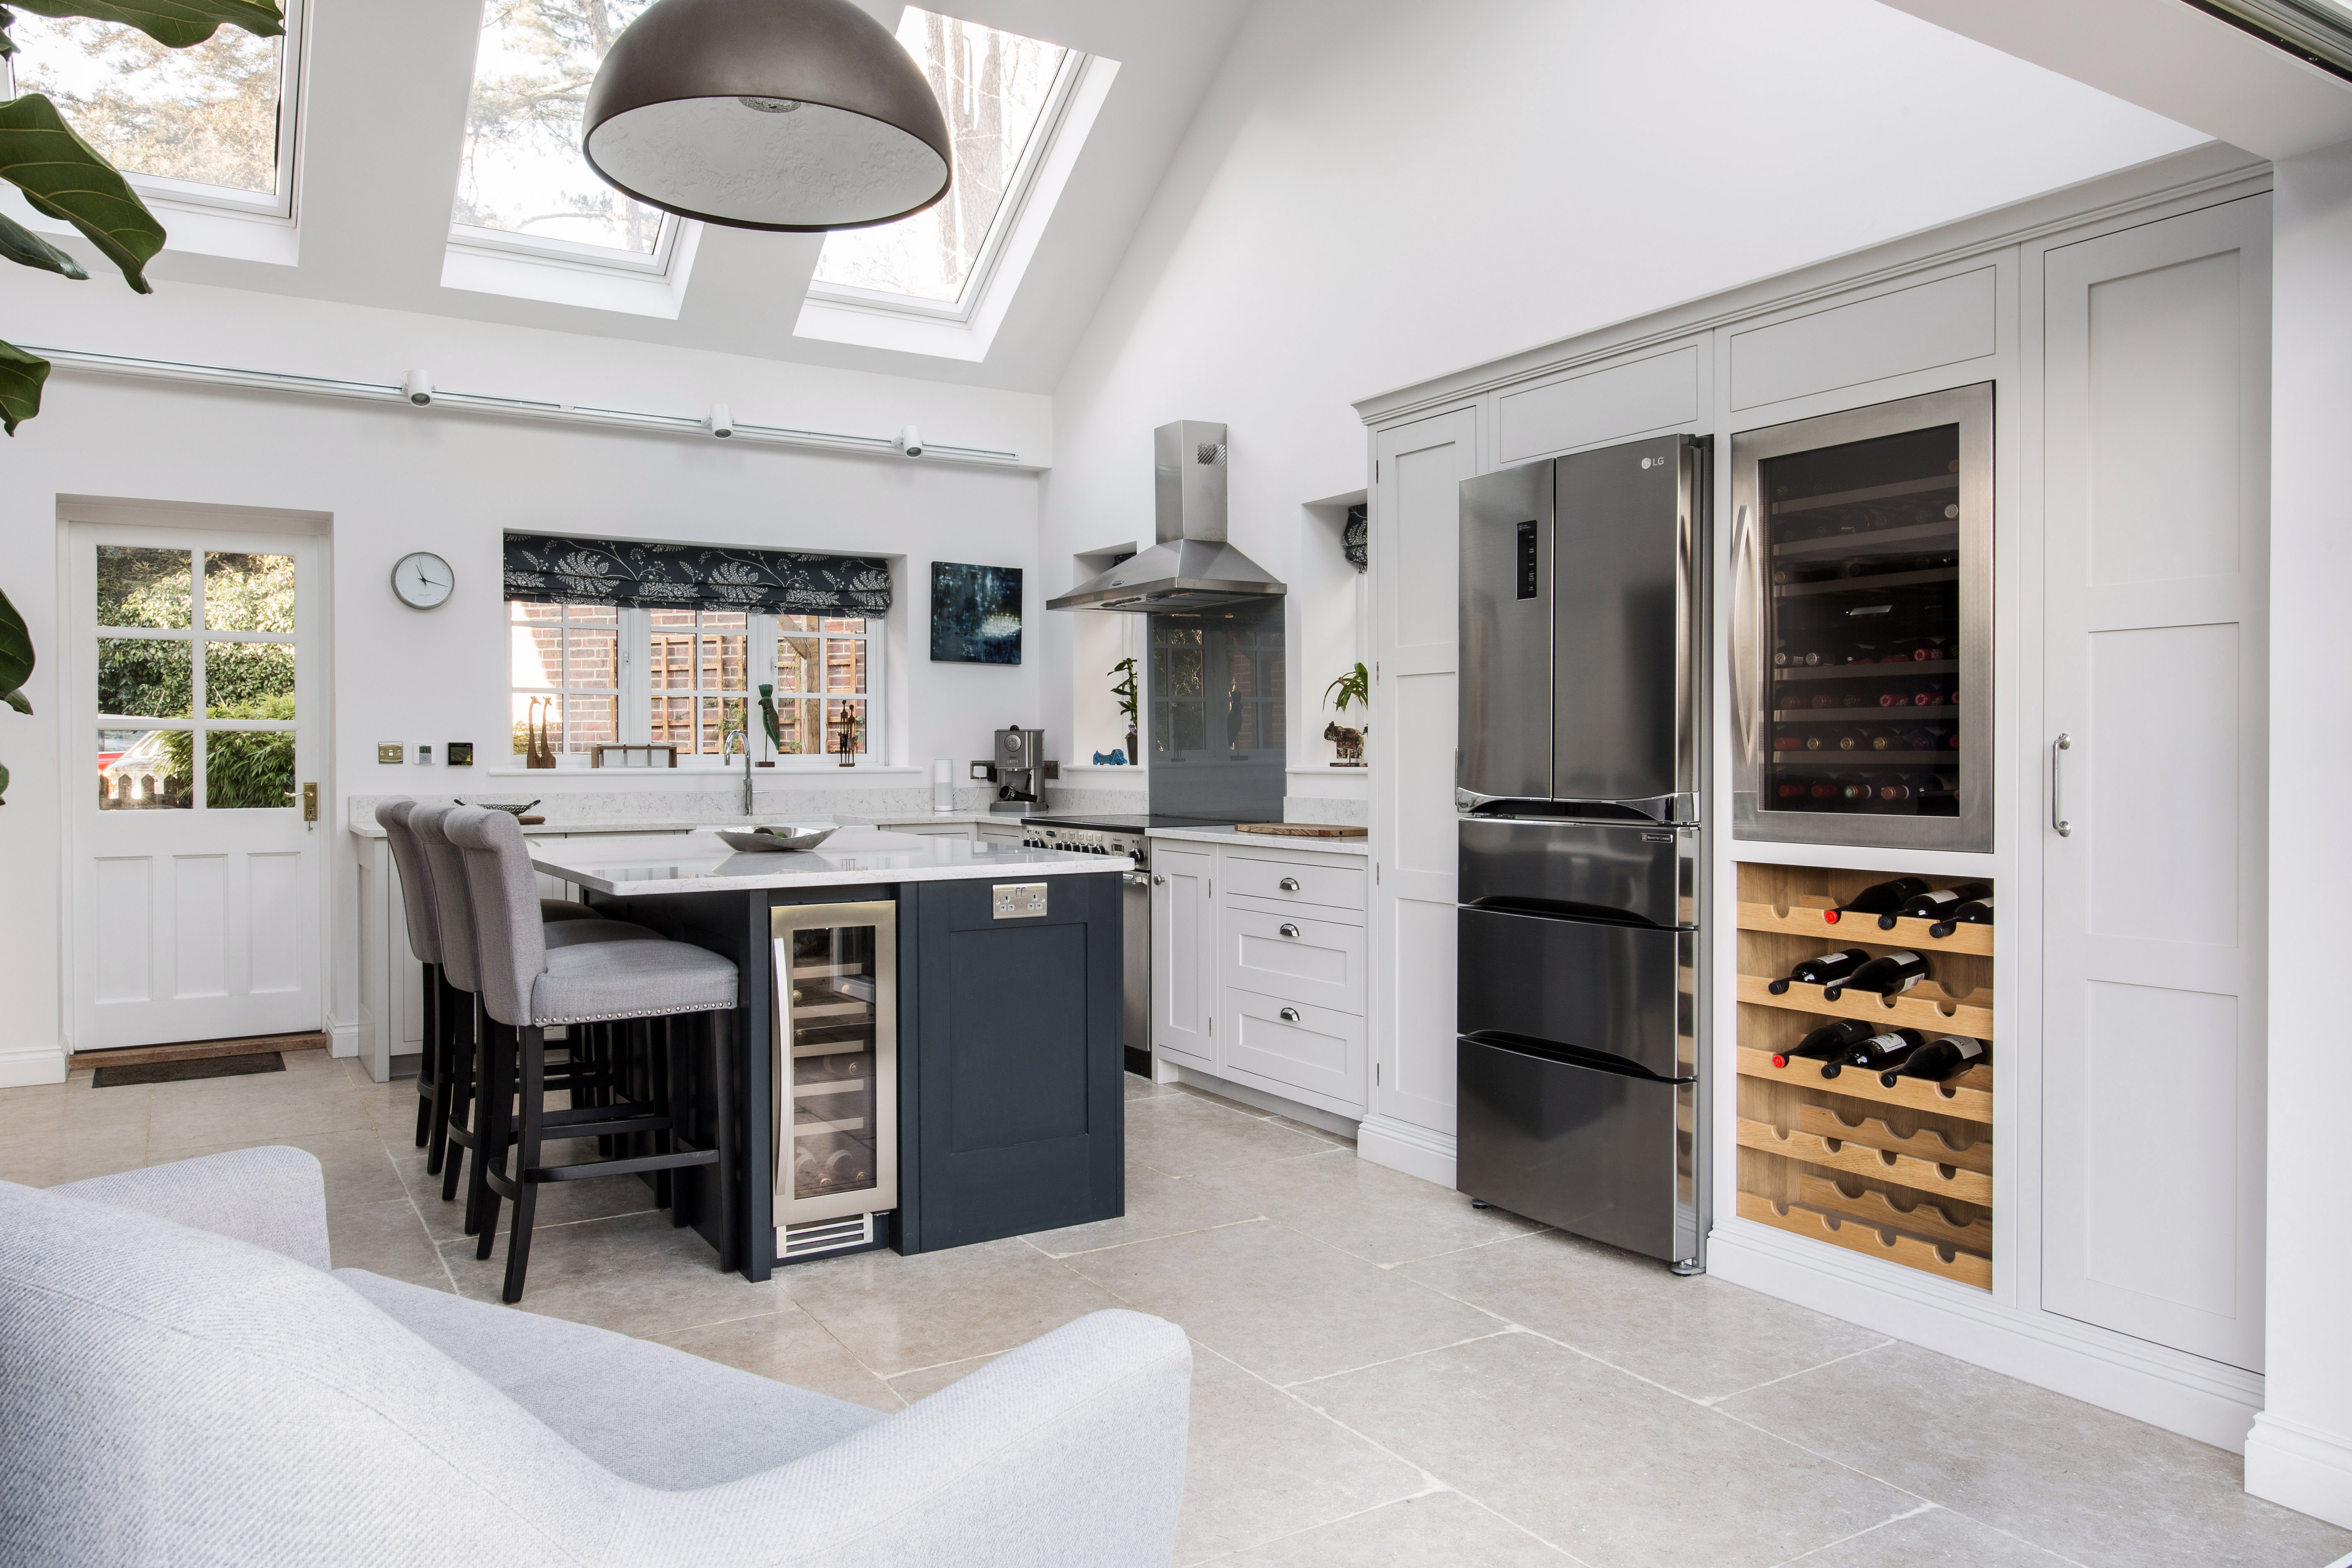 A Beautiful Kitchen Extension With Floods Of Natural Light | Bespoke ...